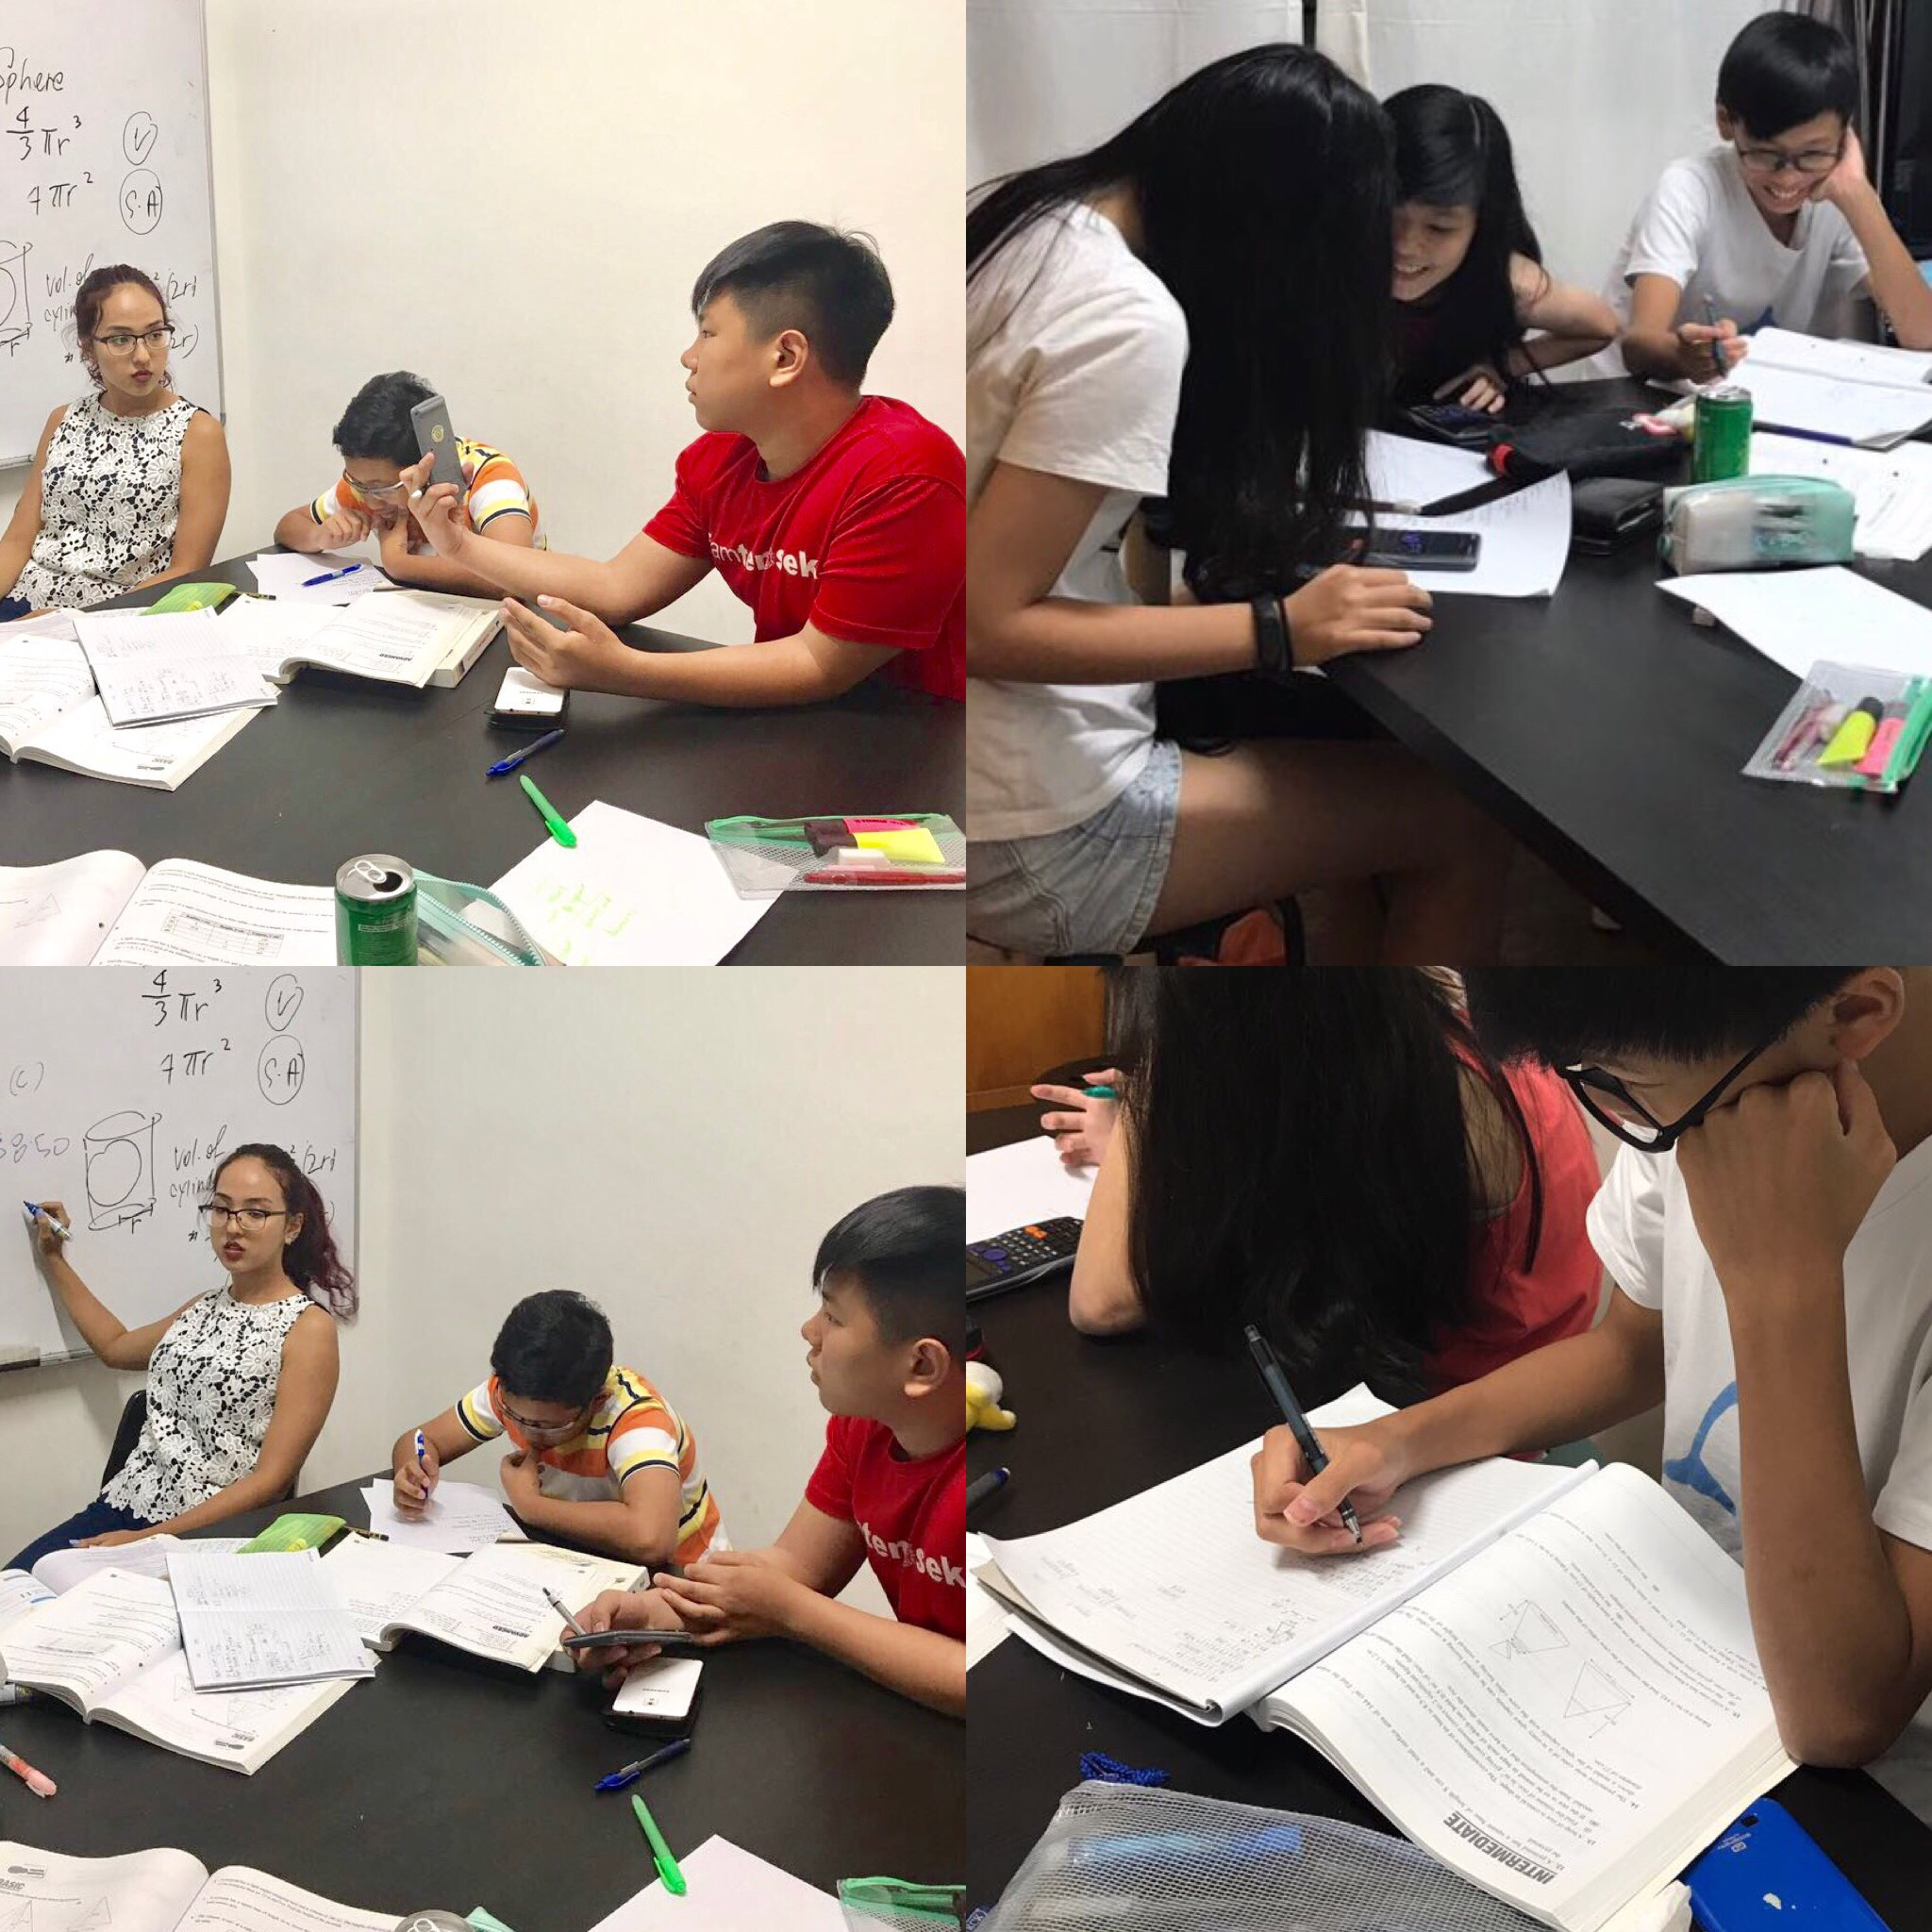 Singapore Tuition Centre Good Tutor for Small Group Pri Sec English Maths Science Qualified Tutors  Primary Secondary P1 p2 p3 p4 p5 p6 PSLE GCE O level Tuition Centre punggol tuition centre english maths science primary PSLE O level tuition small group